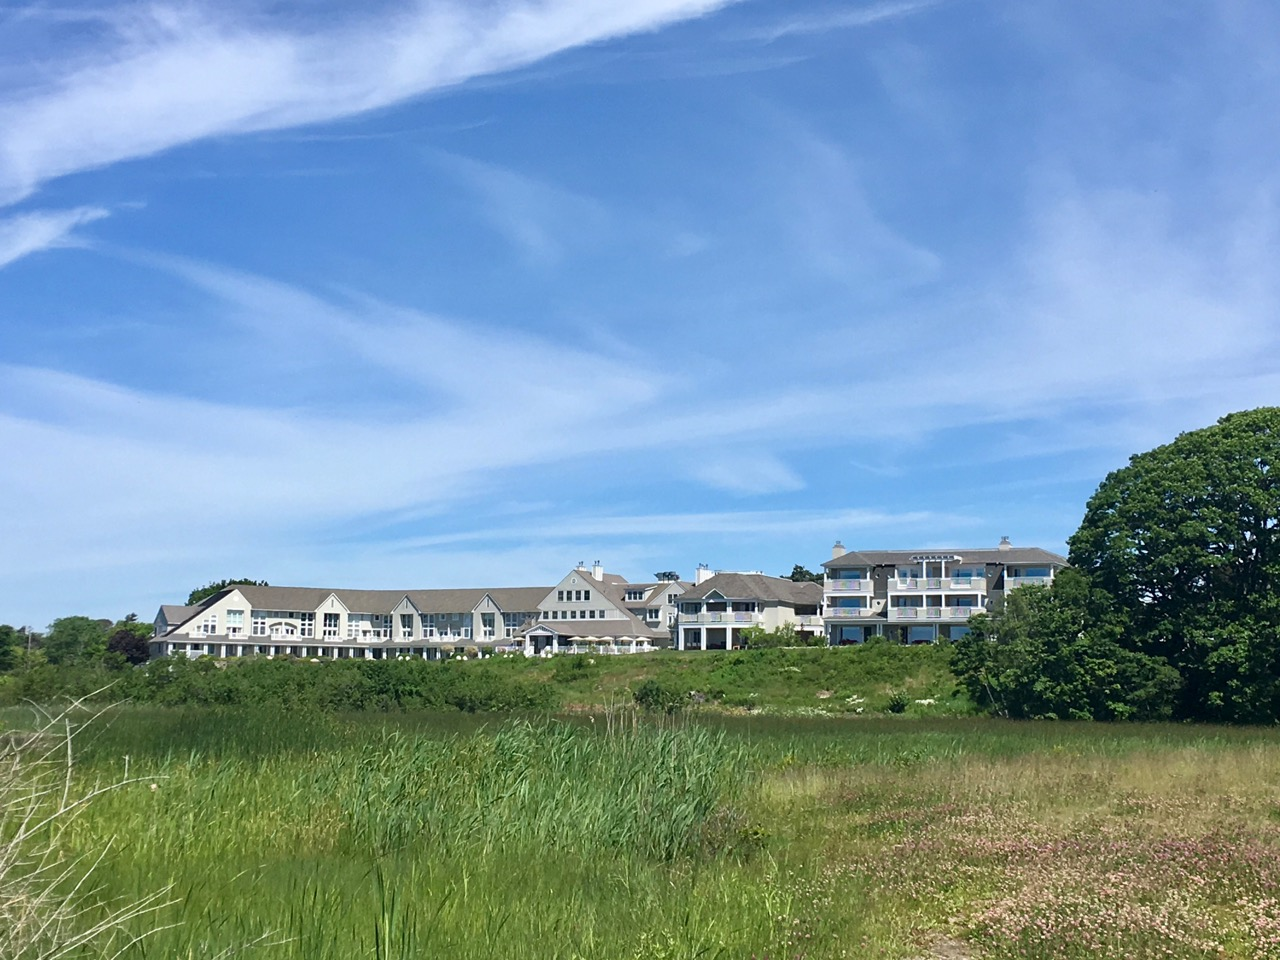 Inn by the Sea as viewed from Crescent Beach